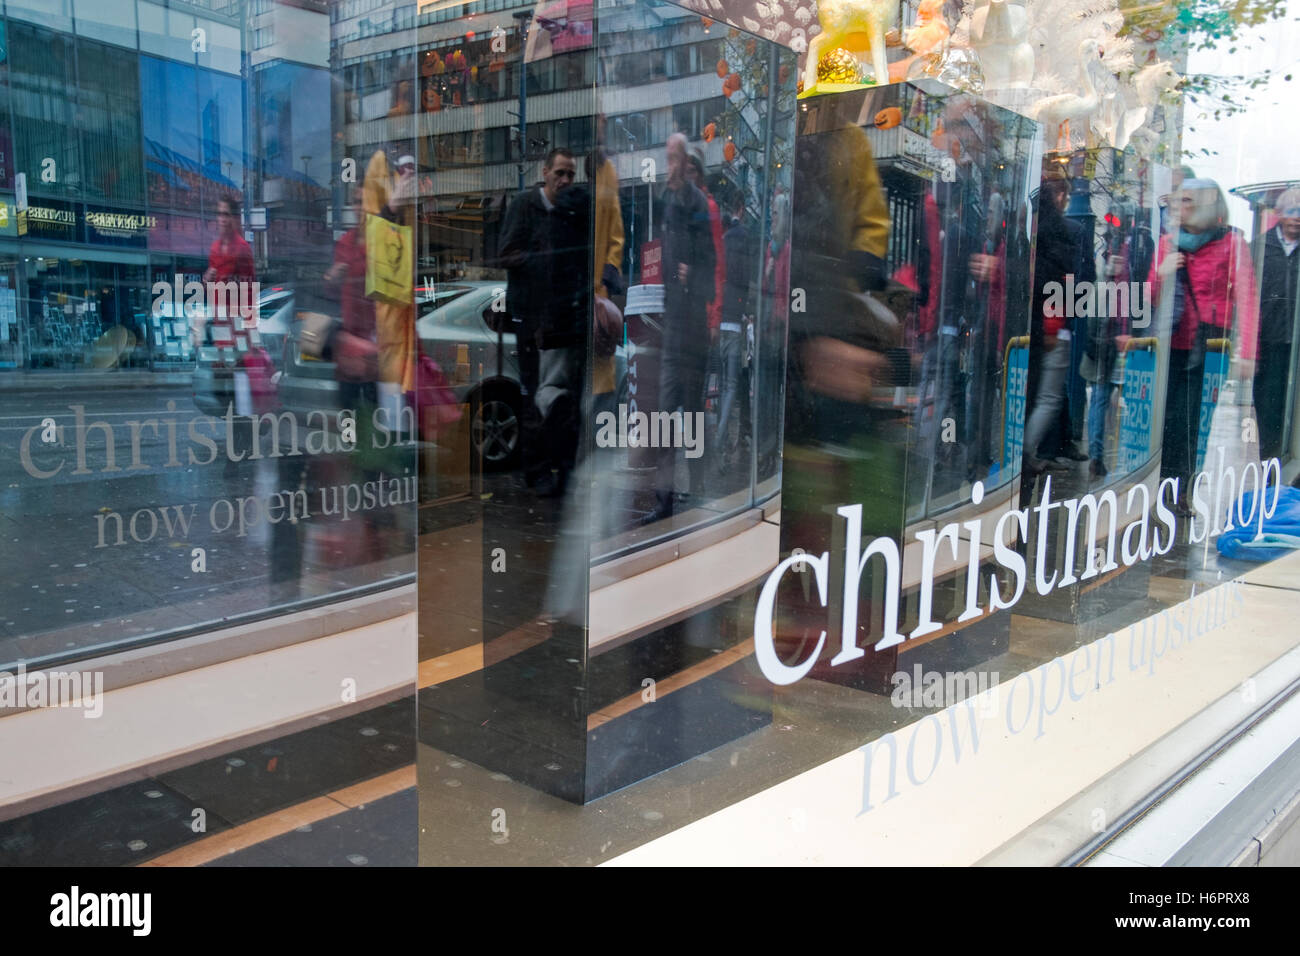 Christmas shop windows in Manchester city centre, UK. - Stock Image